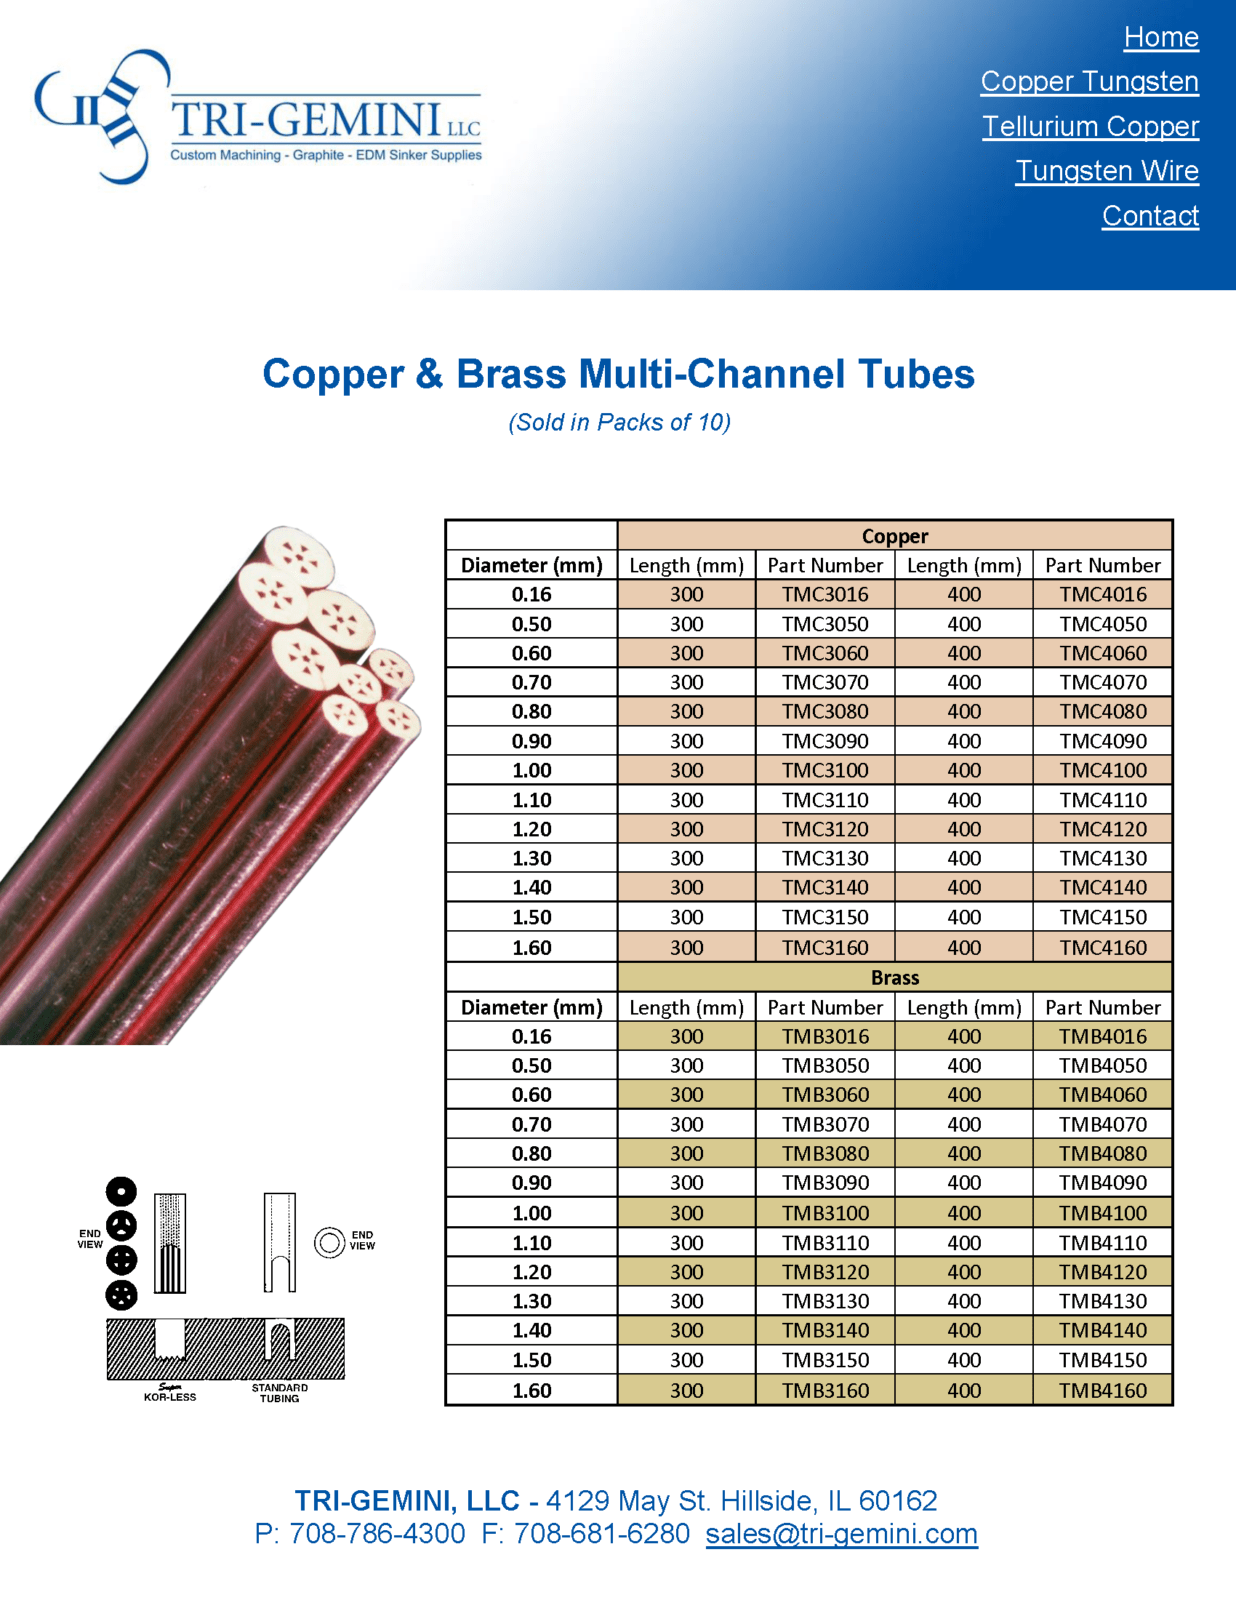 Copper & Brass Multi-Channel Tubes